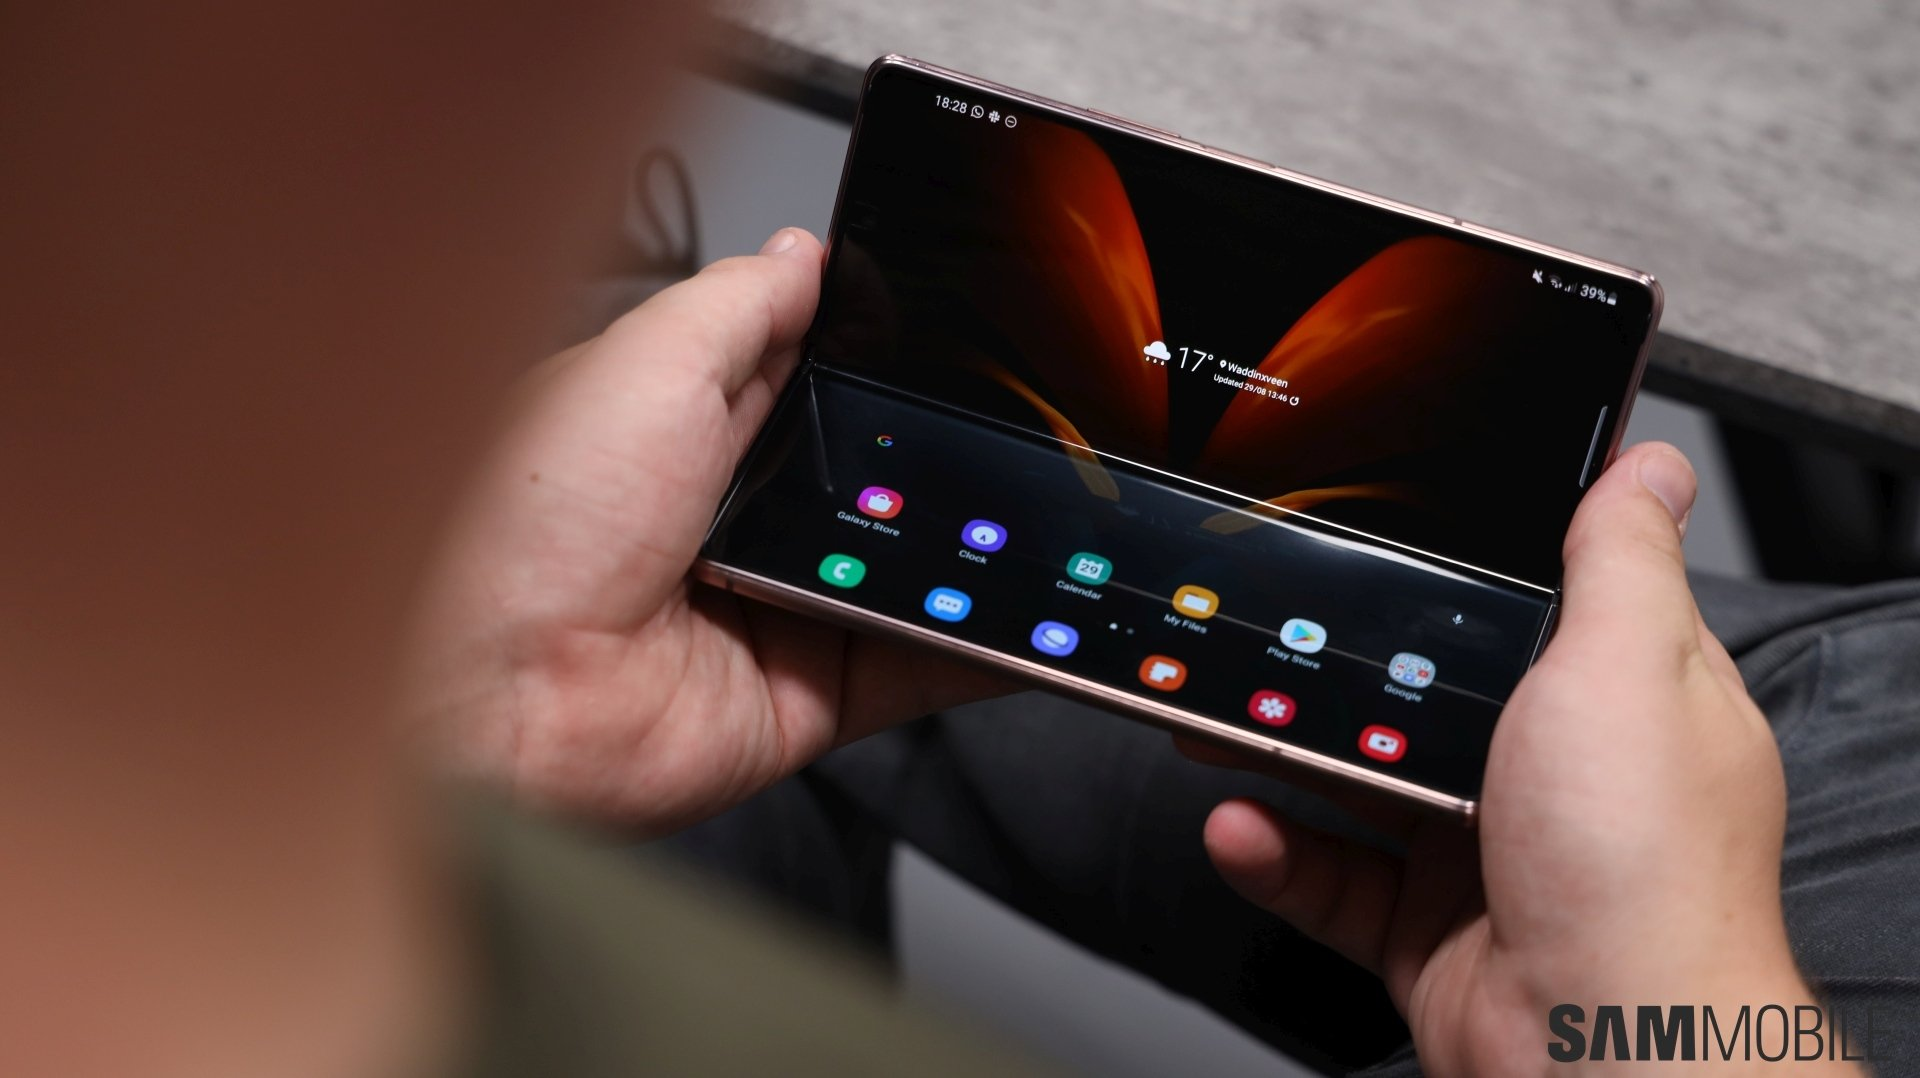 Samsung Galaxy Z Fold 2 hands-on: This is the future! - SamMobile